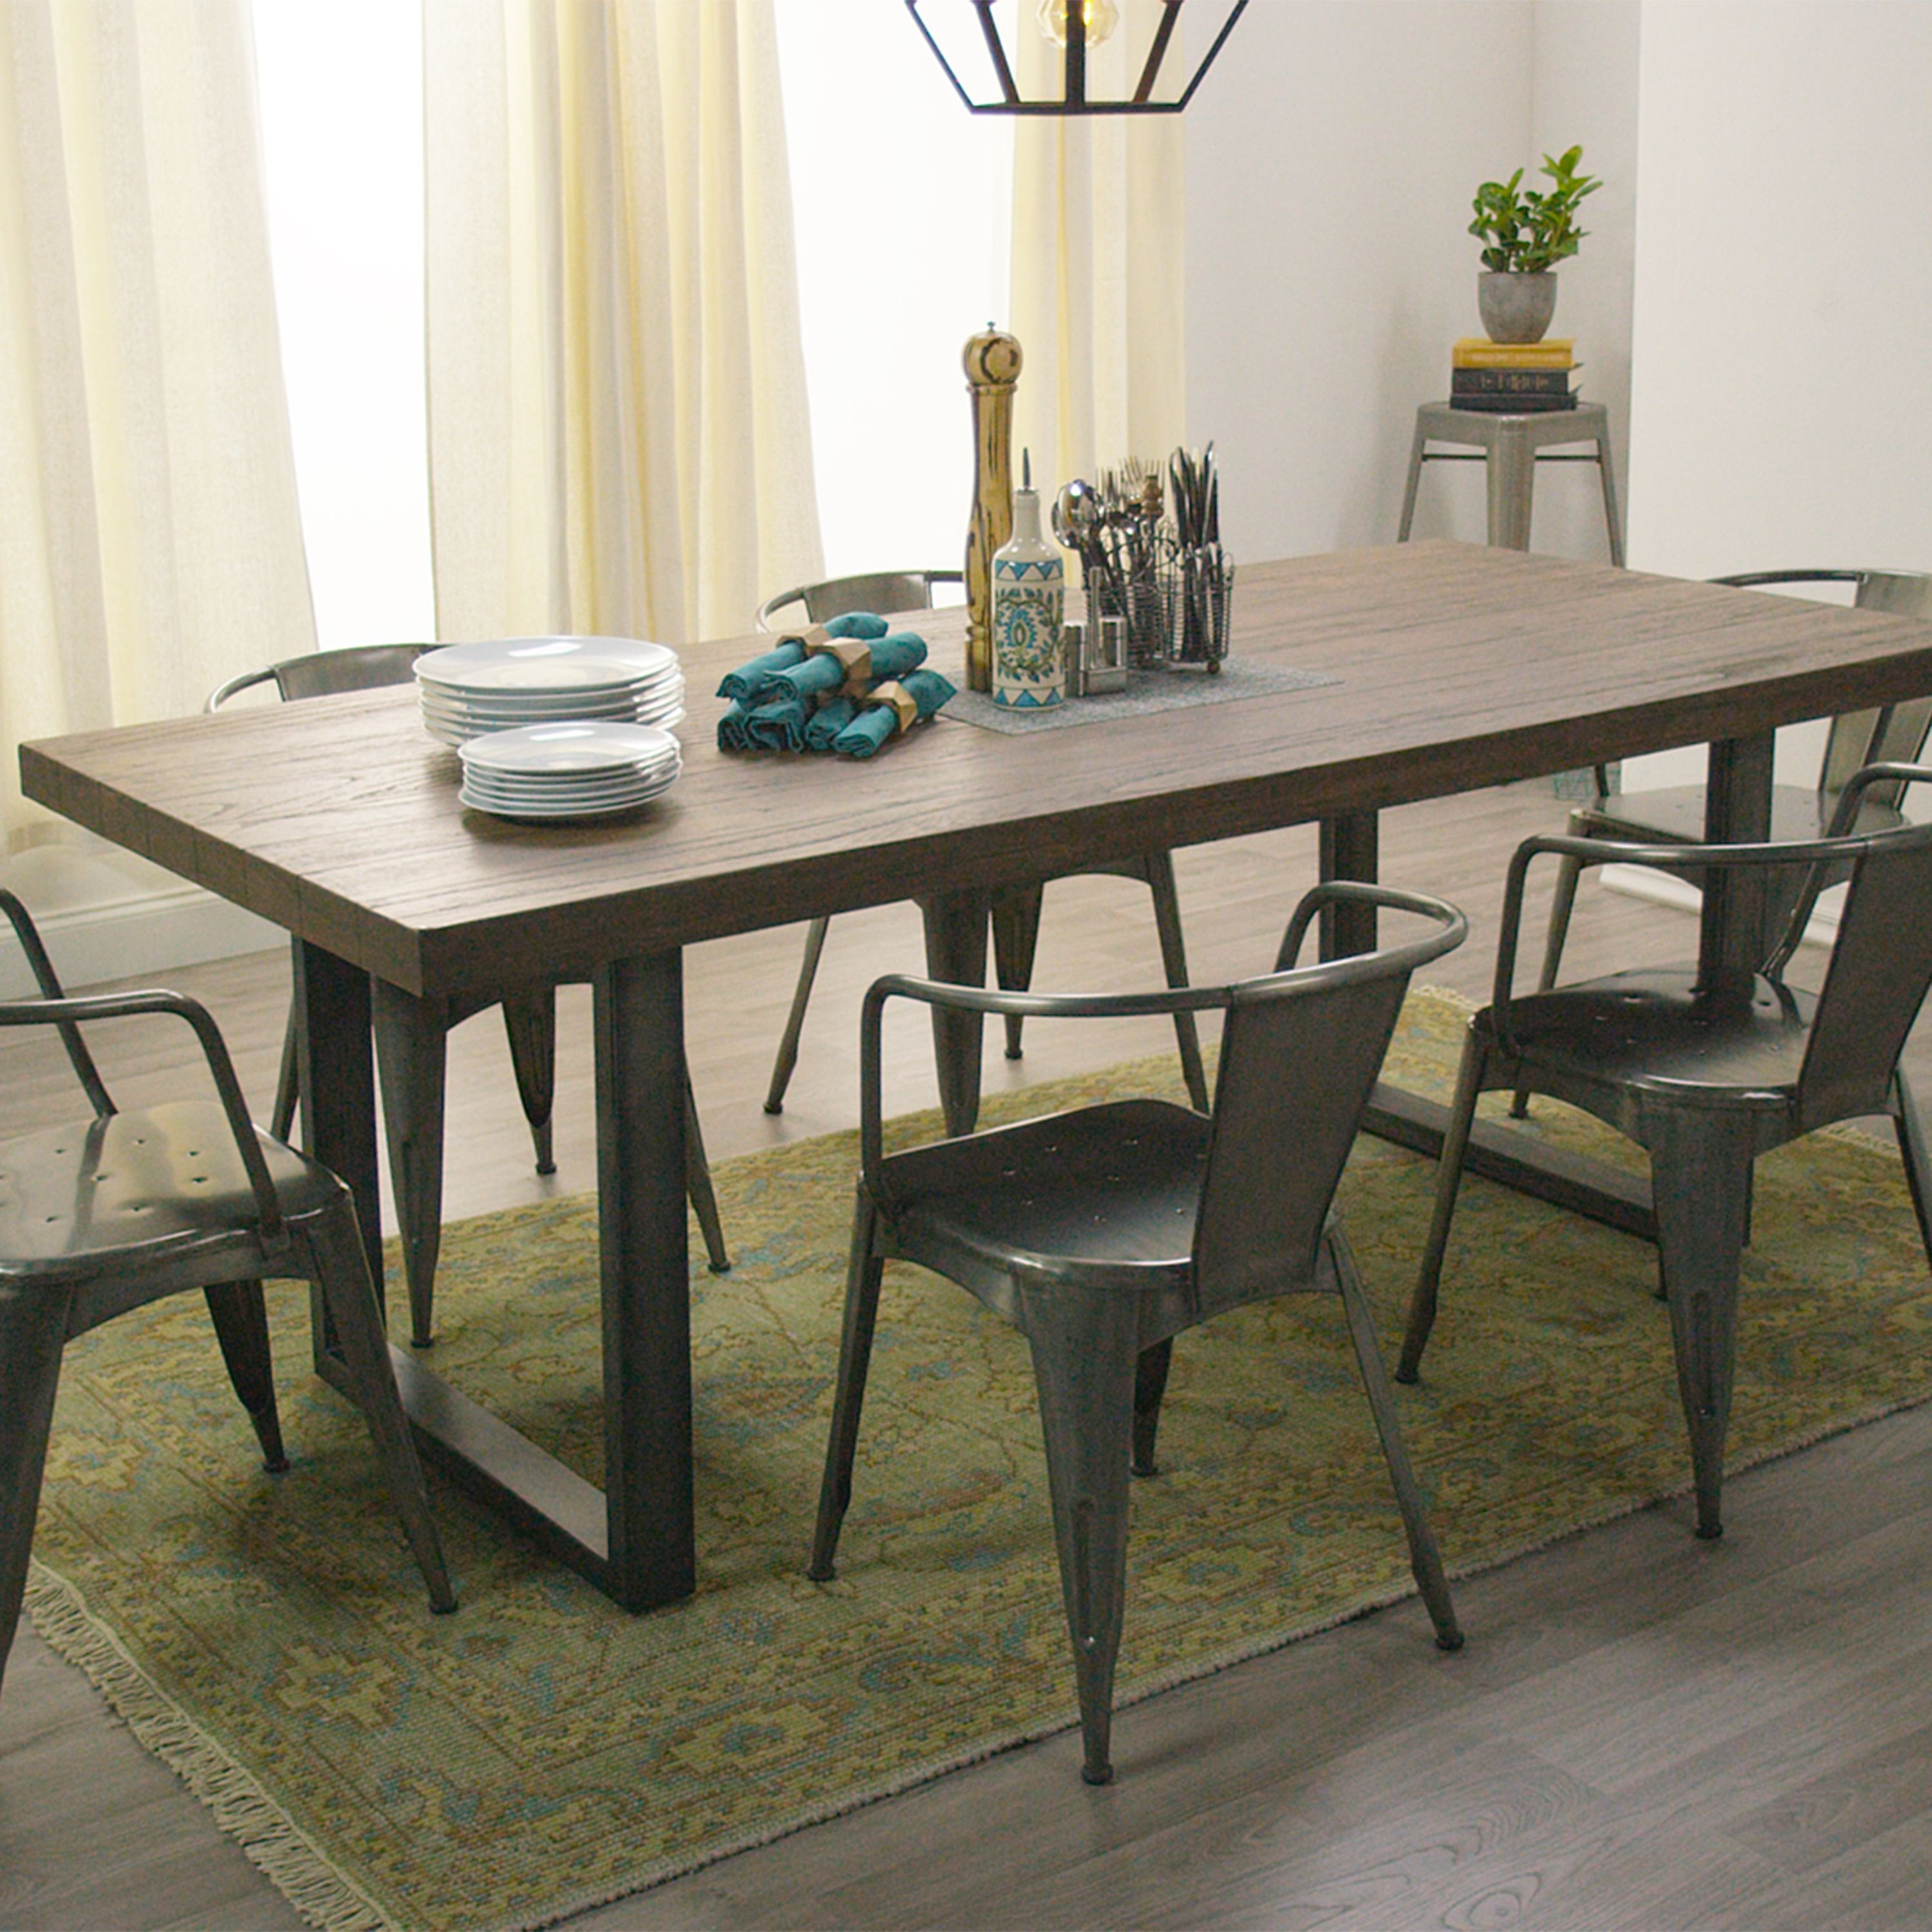 Latest $349 Crafted In Indonesia With A Lightly Distressed, Brushed Finish Intended For Brushed Metal Dining Tables (View 5 of 25)